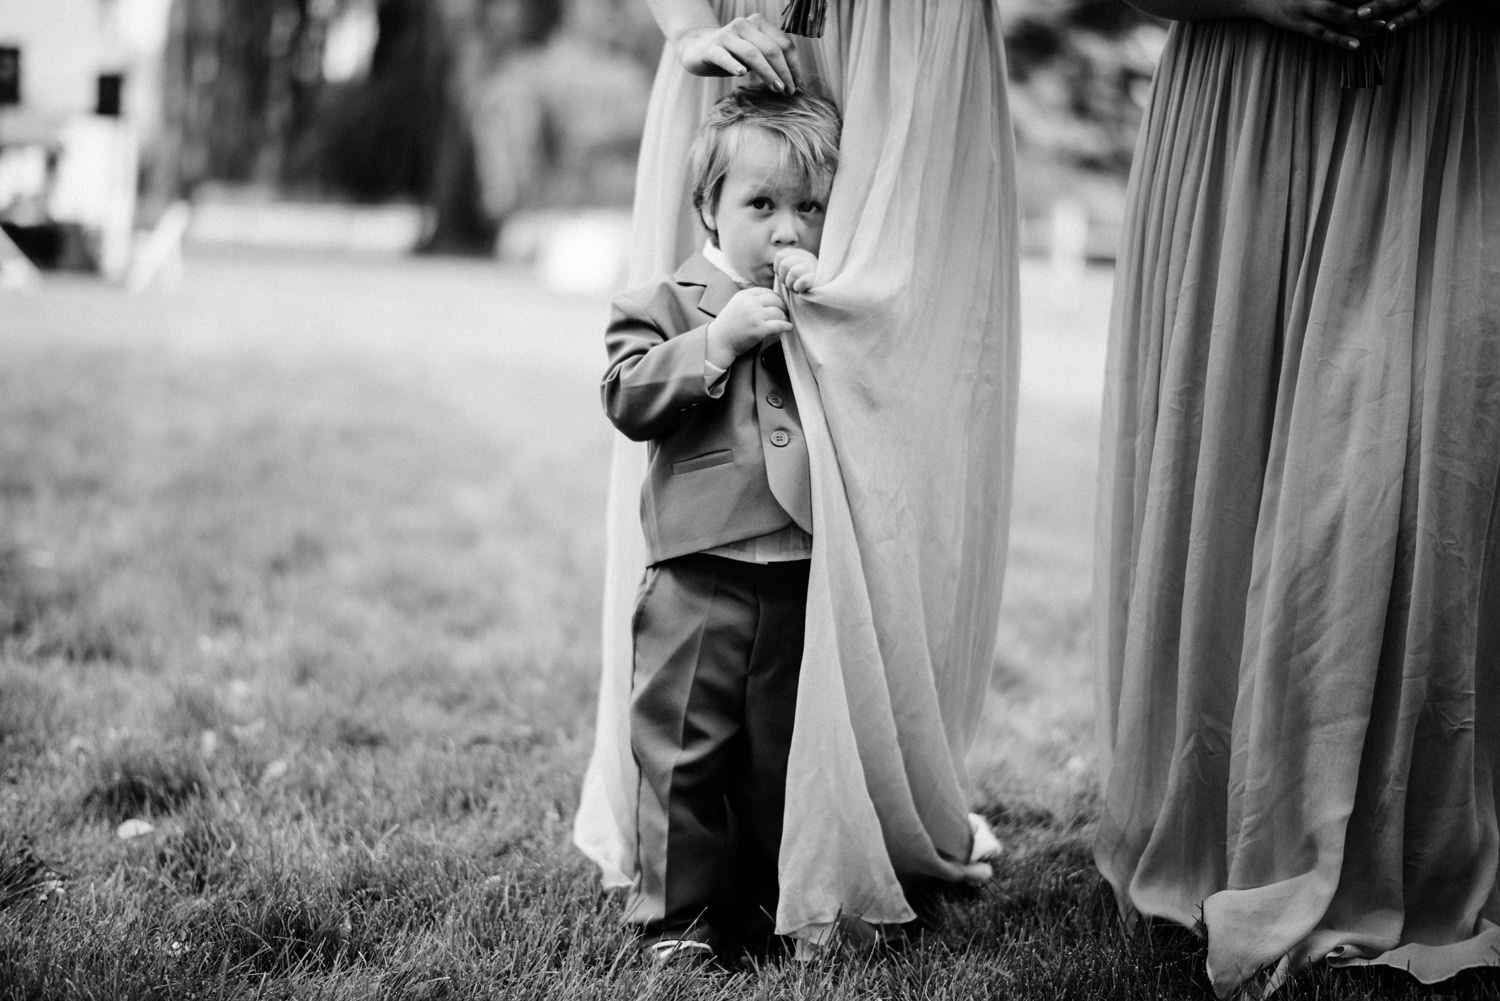 ryan-flynn-best-wedding-photography-2015-seattle-film-photographer-0099.JPG